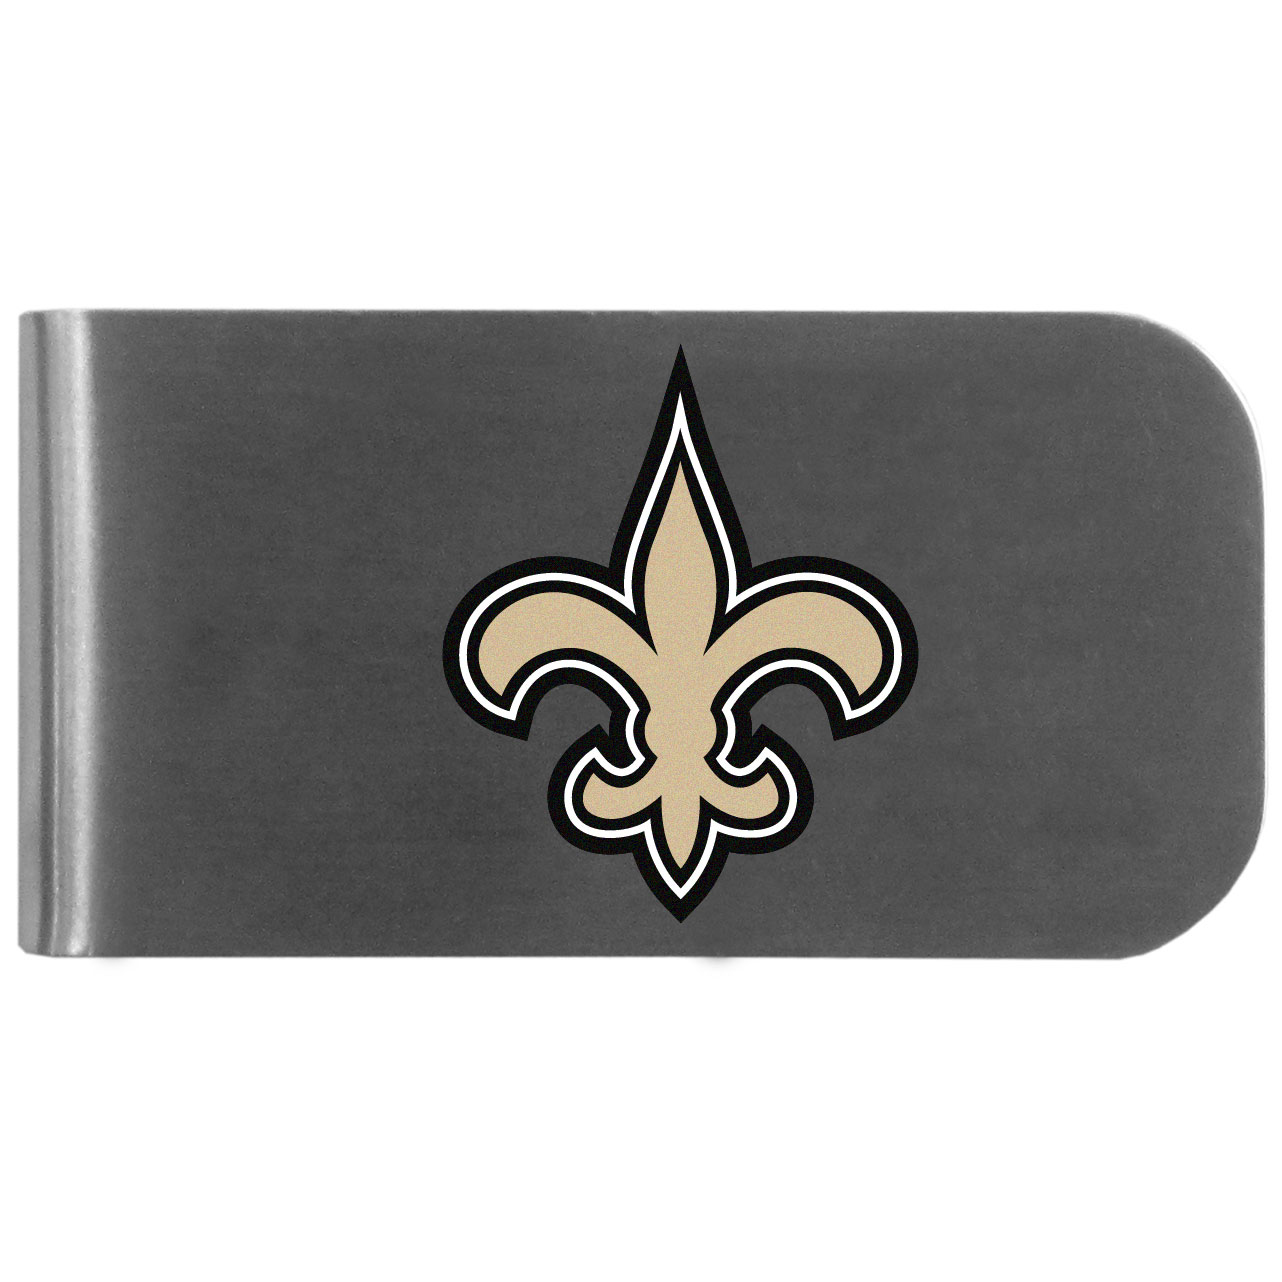 New Orleans Saints Logo Bottle Opener Money Clip - This unique money clip features a classic, brushed-metal finish with a handy bottle opener feature on the back. The clip has the New Orleans Saints logo expertly printed on the front of the clip.